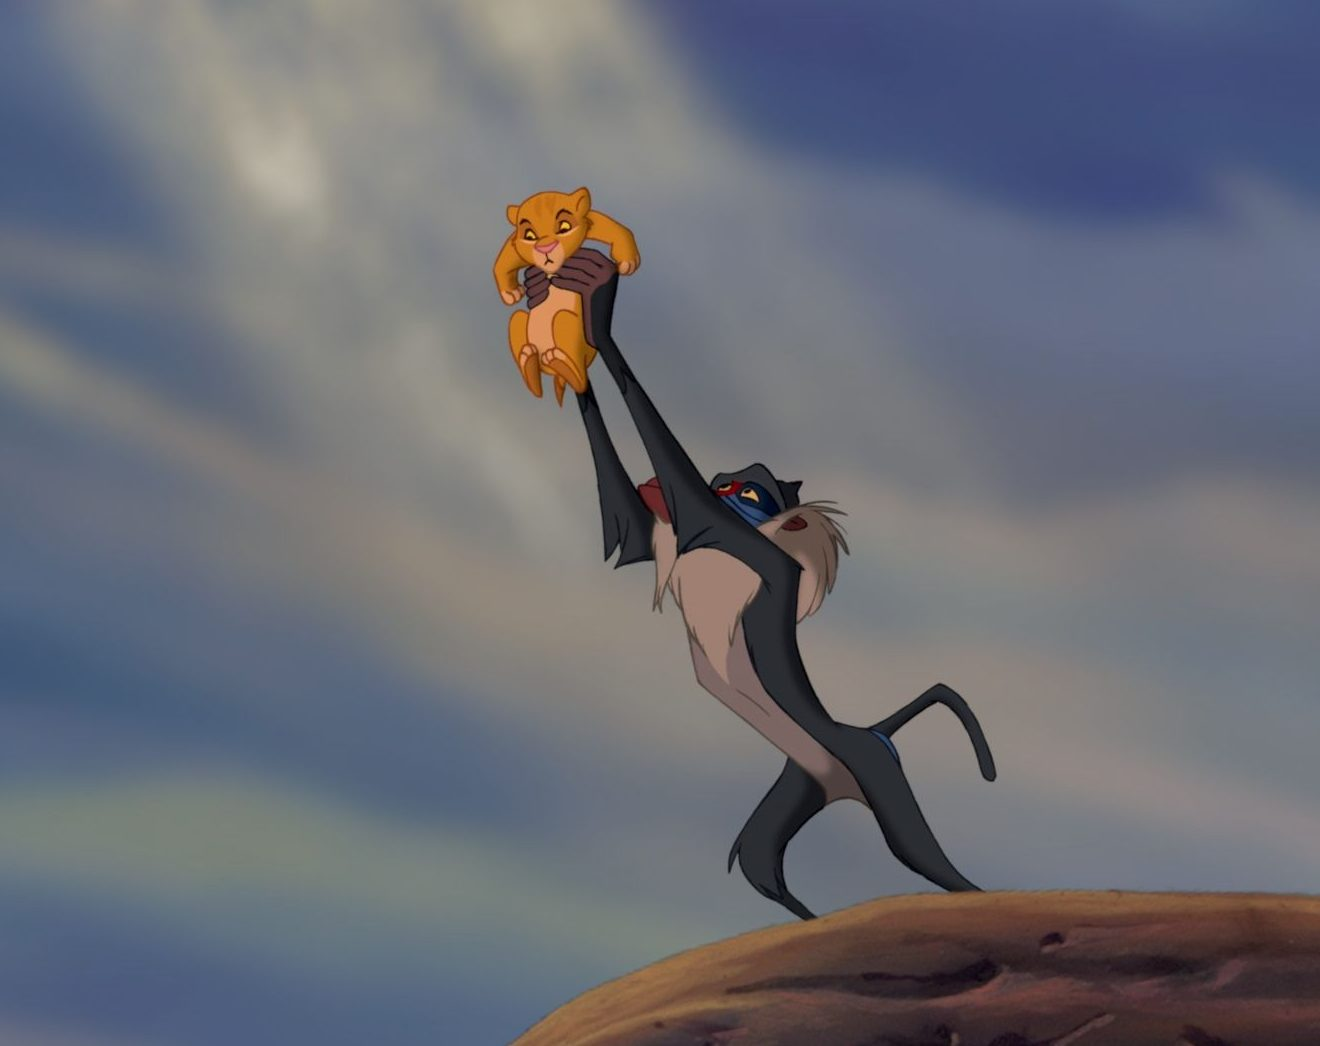 """THE LION KING""  (L-R) Simba (voice by Jonathan Taylor Thomas), Rafiki (voice by Robert Guillaume)  ©Disney Enterprises, Inc.  All Rights Reserved."